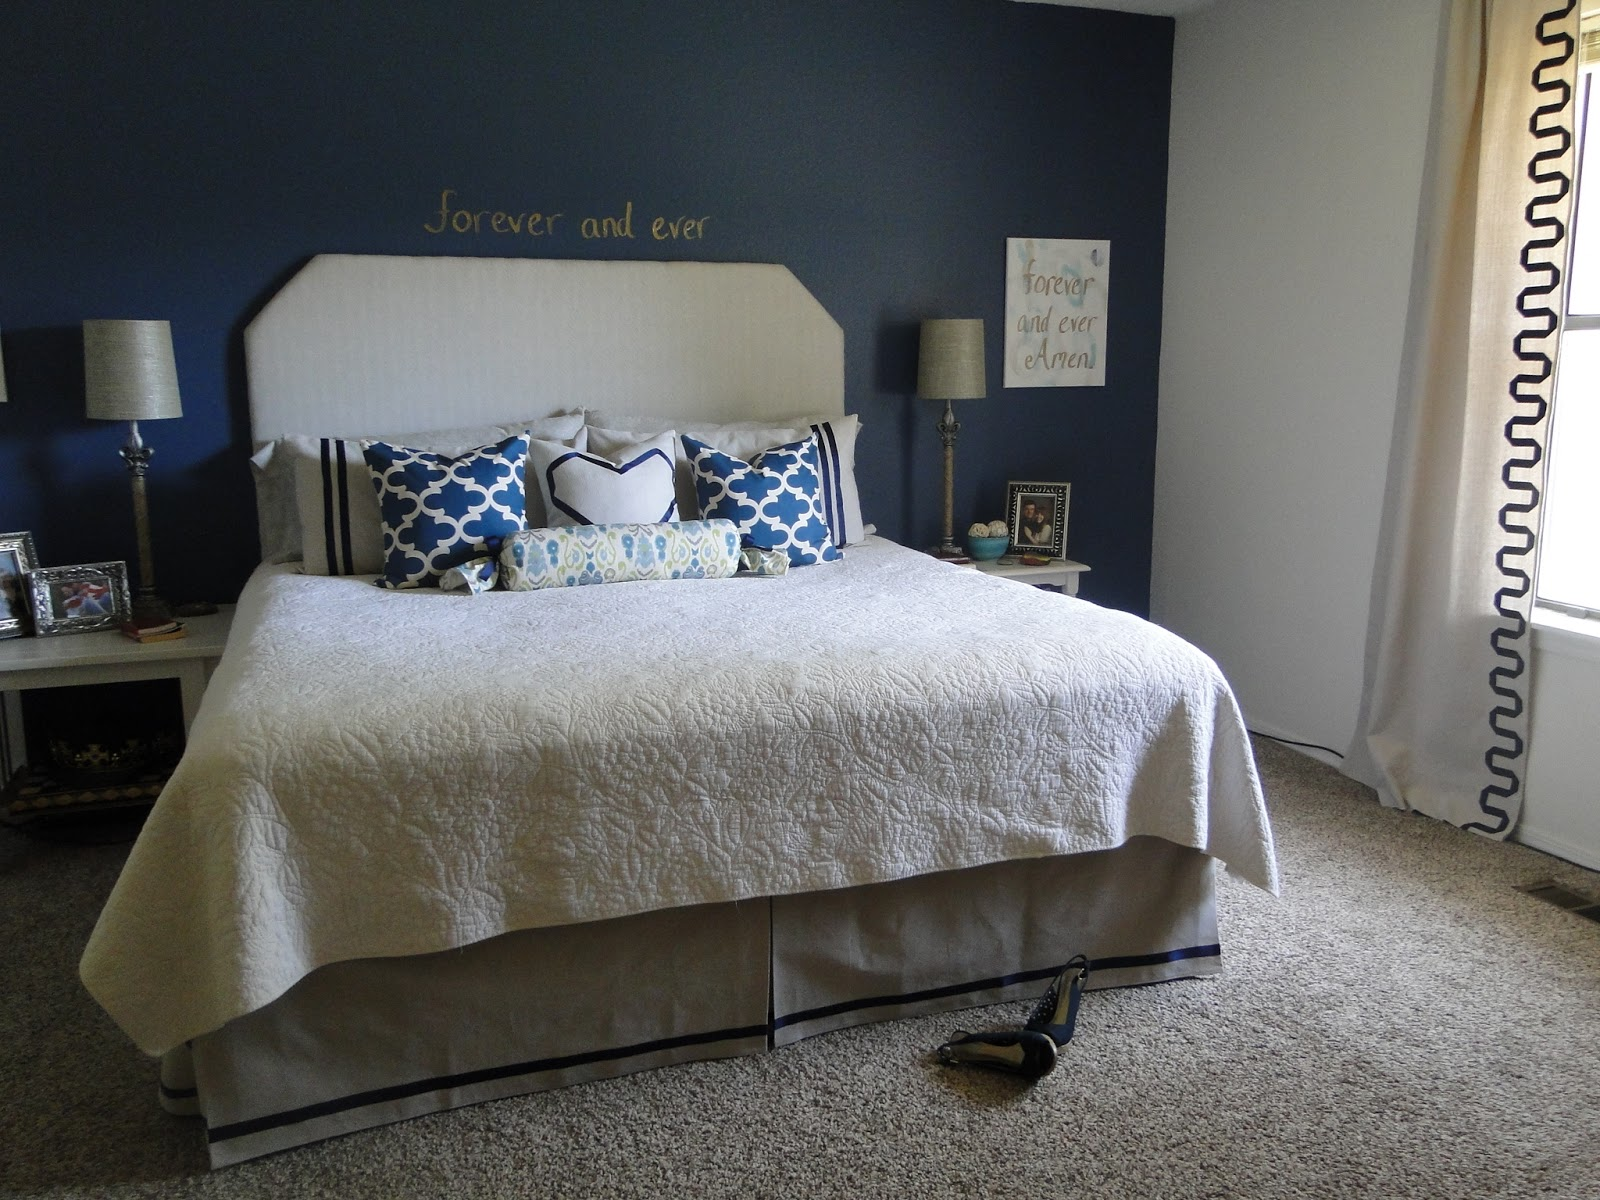 accessories full blue gray image grey bedrooms decor bedroom and colors navy size decorgrey decorating bathroom ideas of perfect paint